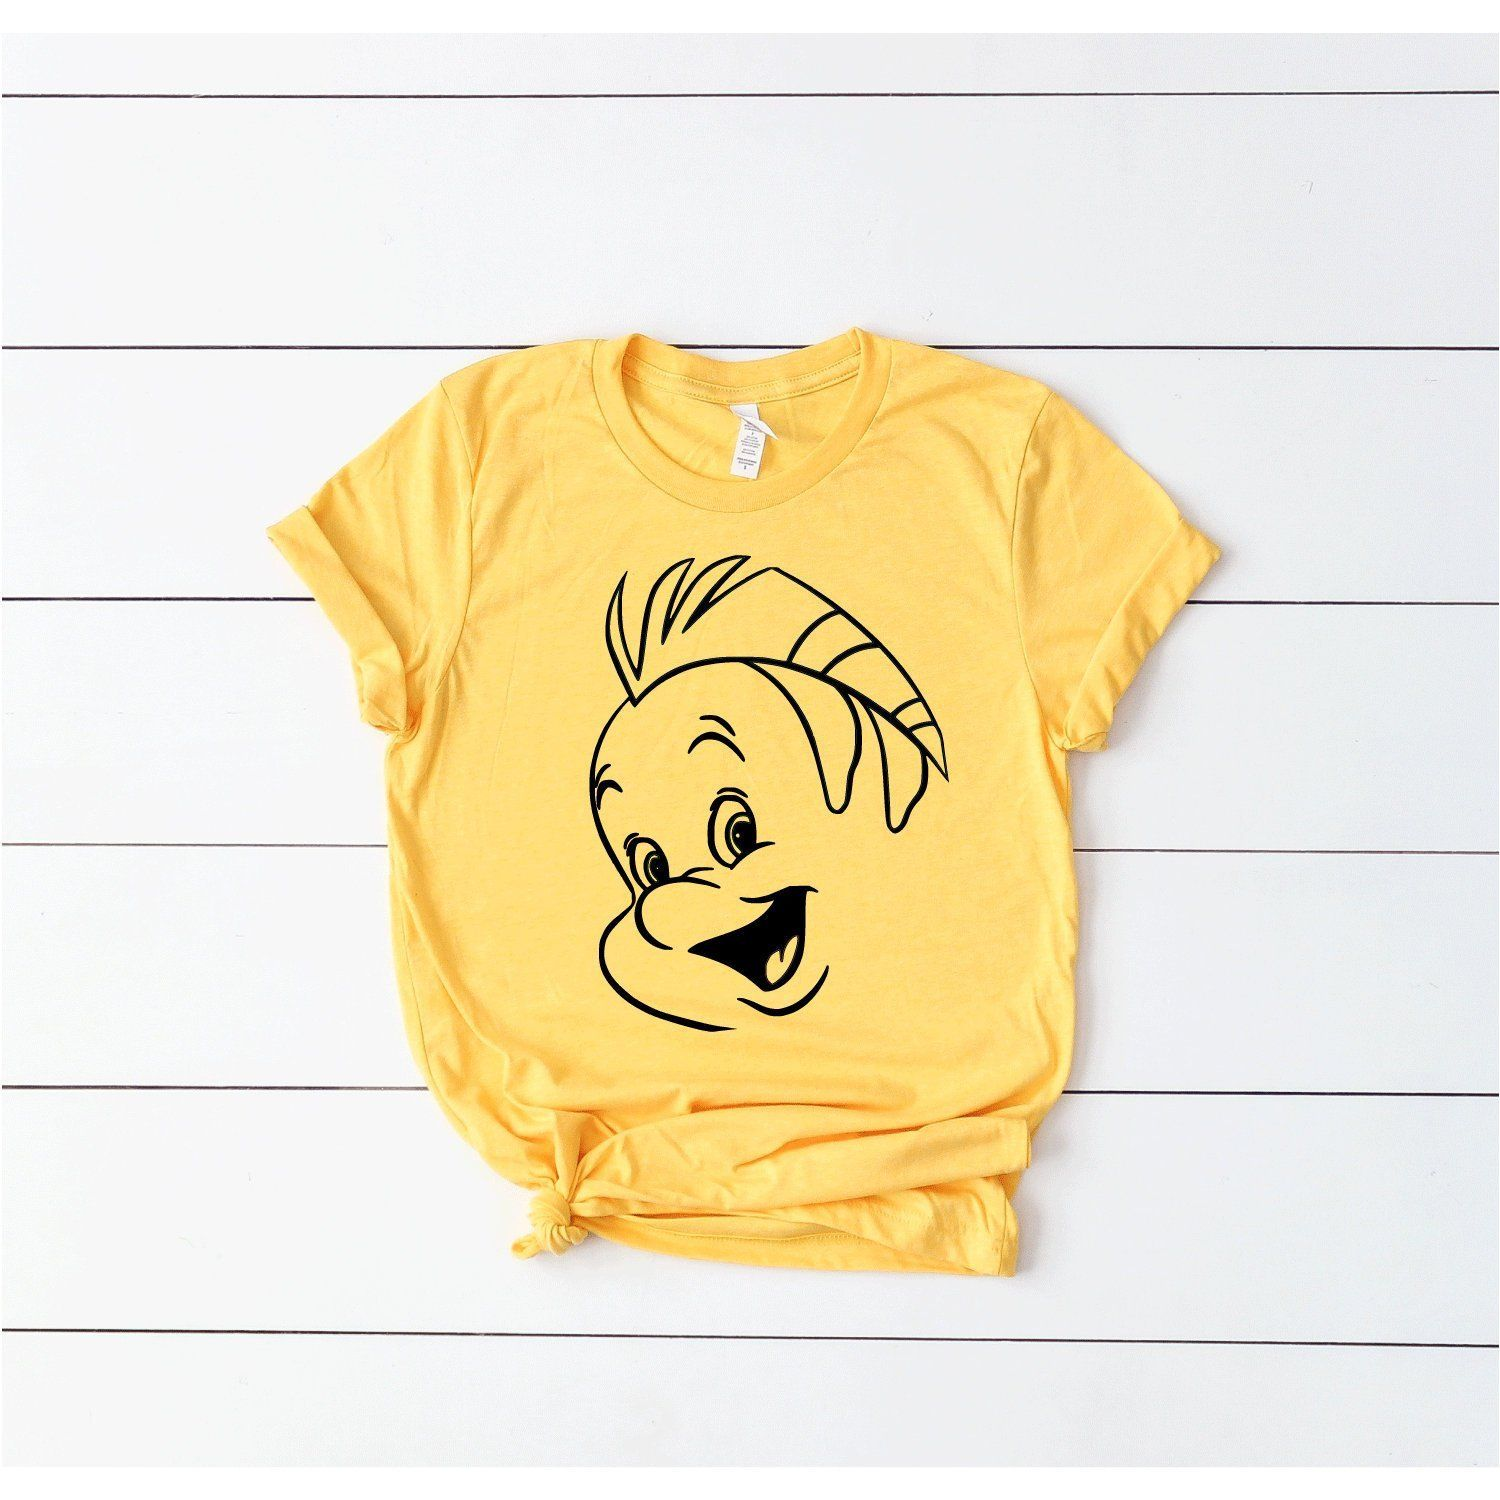 Flounder Disney Tee - Adult, Youth, Toddler, and Tanks ...